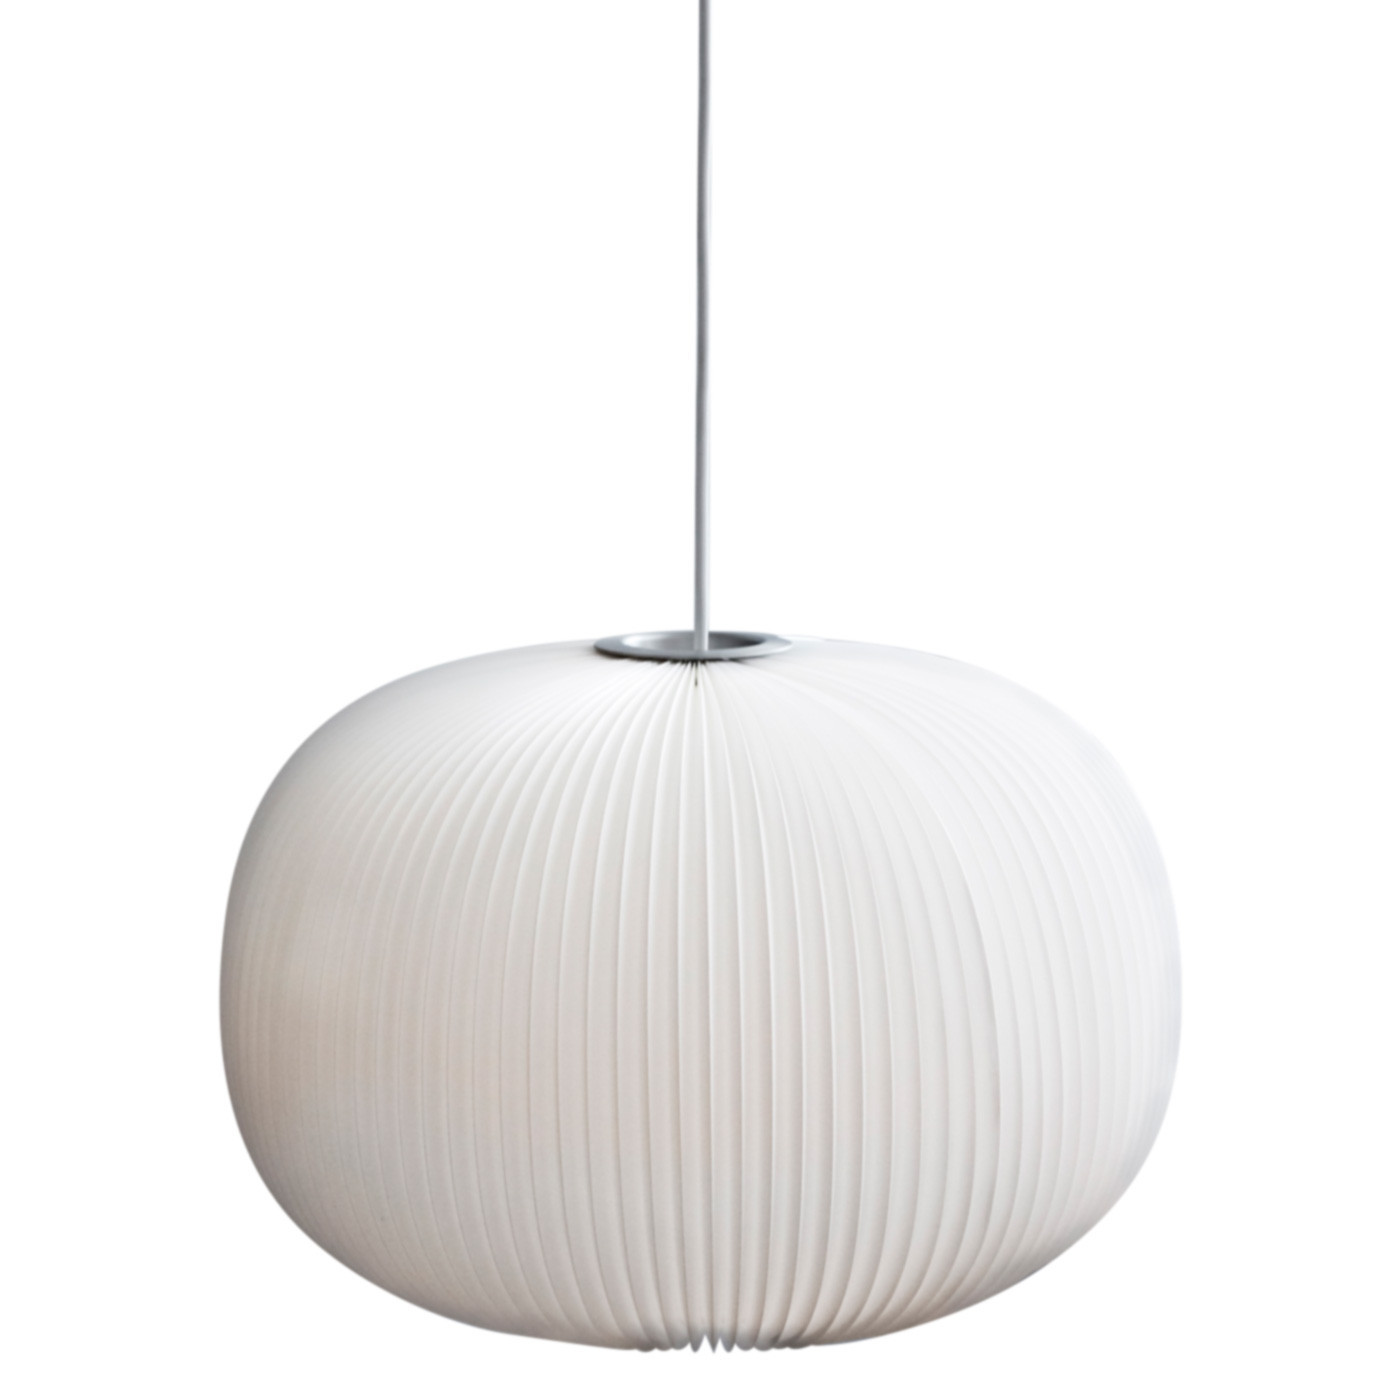 Le Klint Lamella 1 Pendant Light